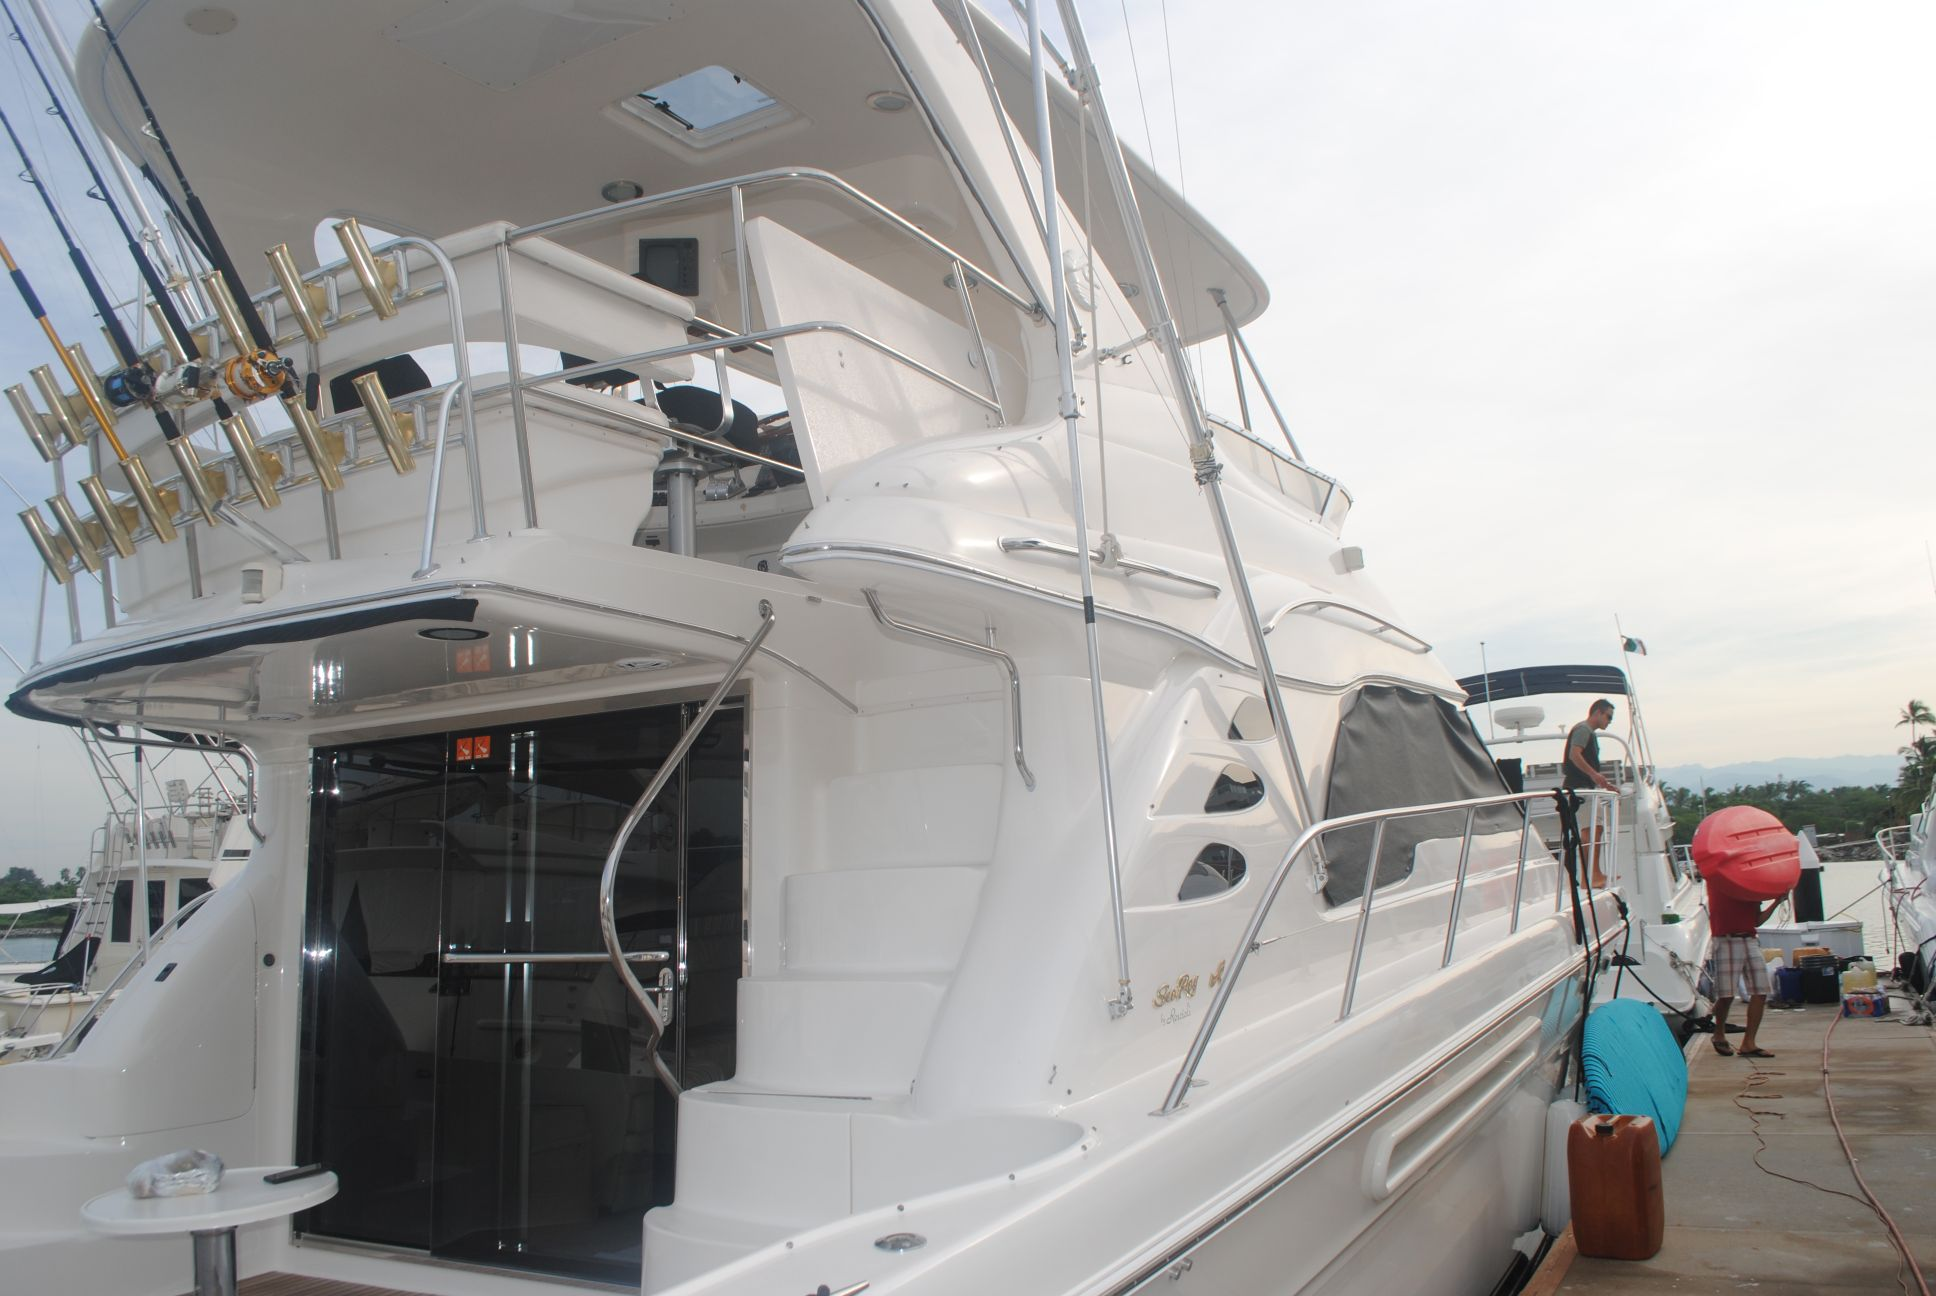 60 ft. Sea Ray - Power Yacht - Up to 20 People